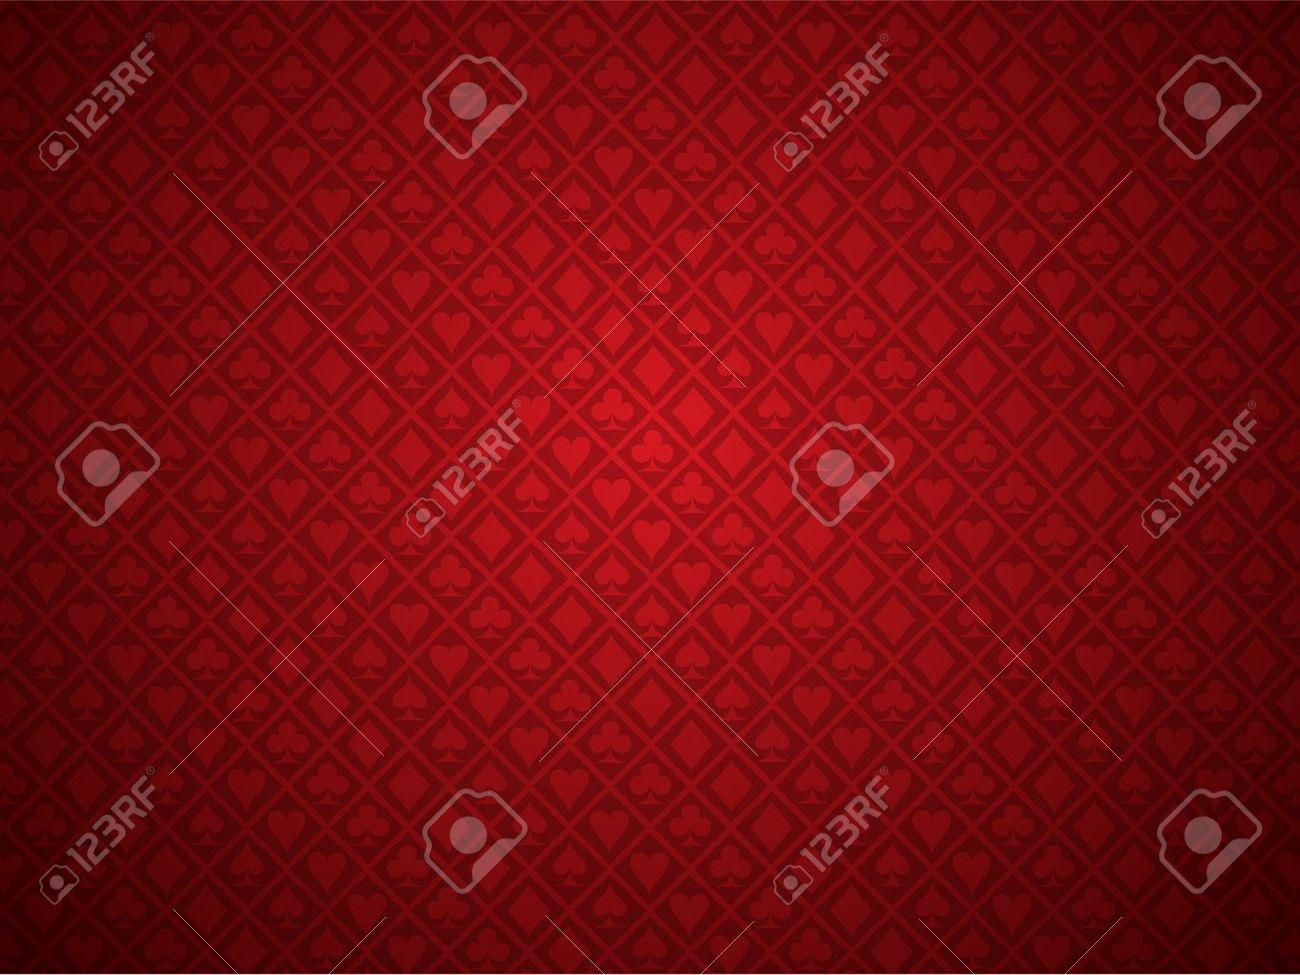 Red Poker Background Stock Vector - 9429506